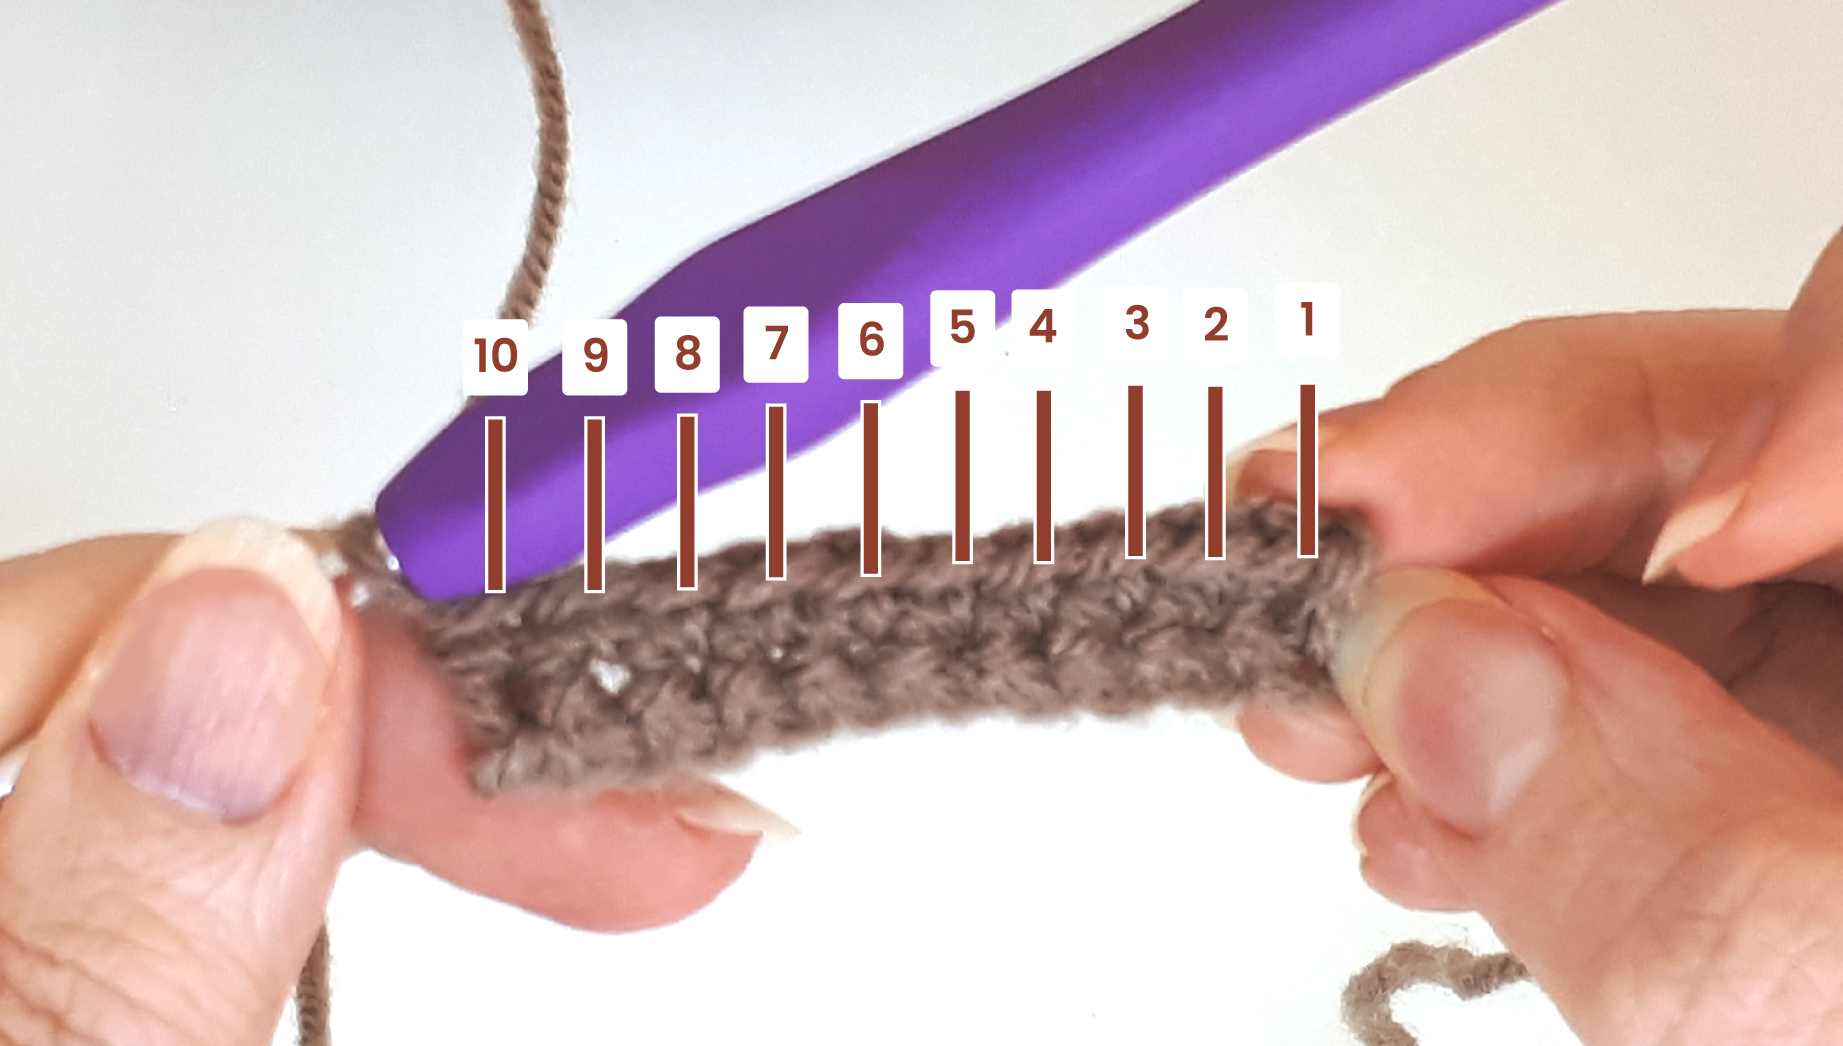 Close-up to a woman's hand showing 10 completed crochet stitches